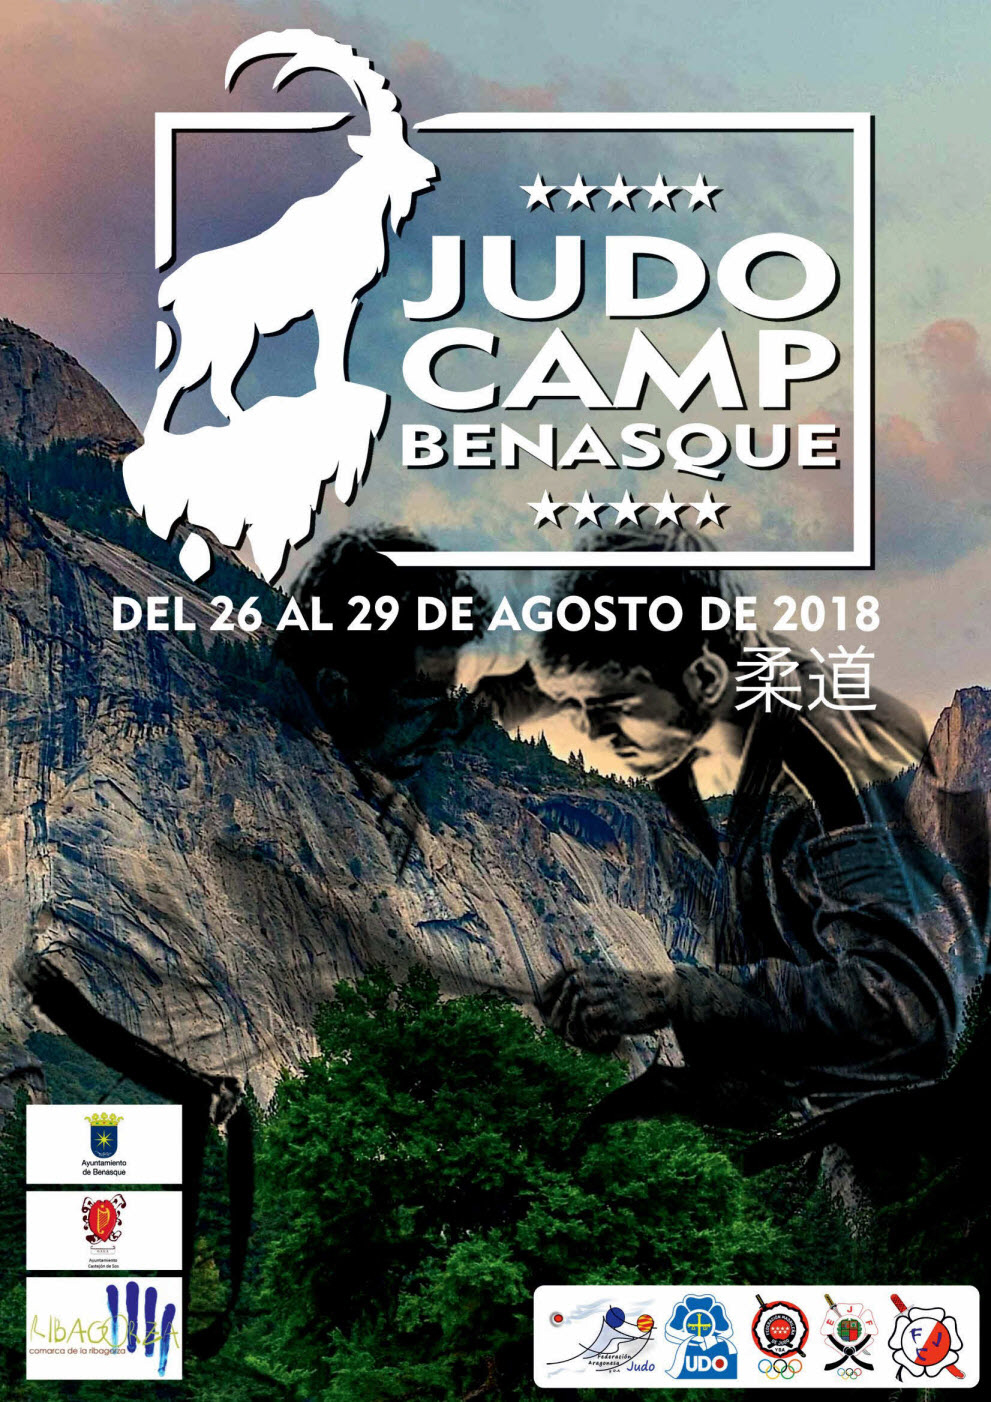 JUDO CAMP BENASQUE 2018